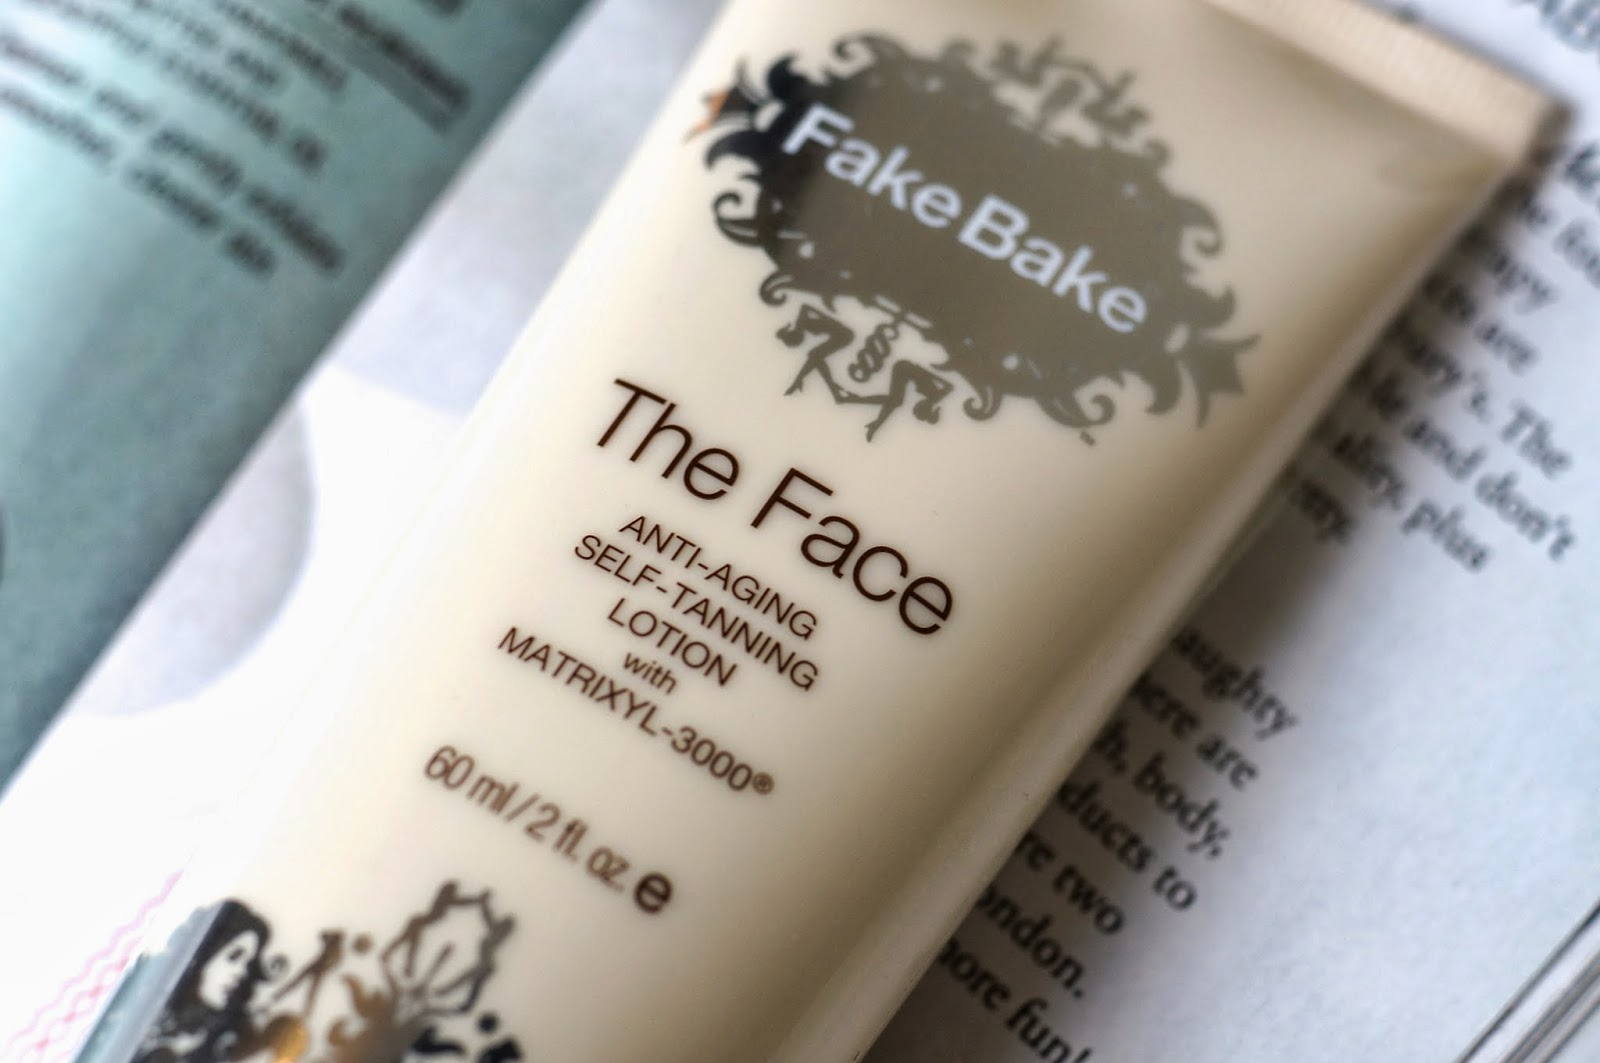 Fake Bake The Face